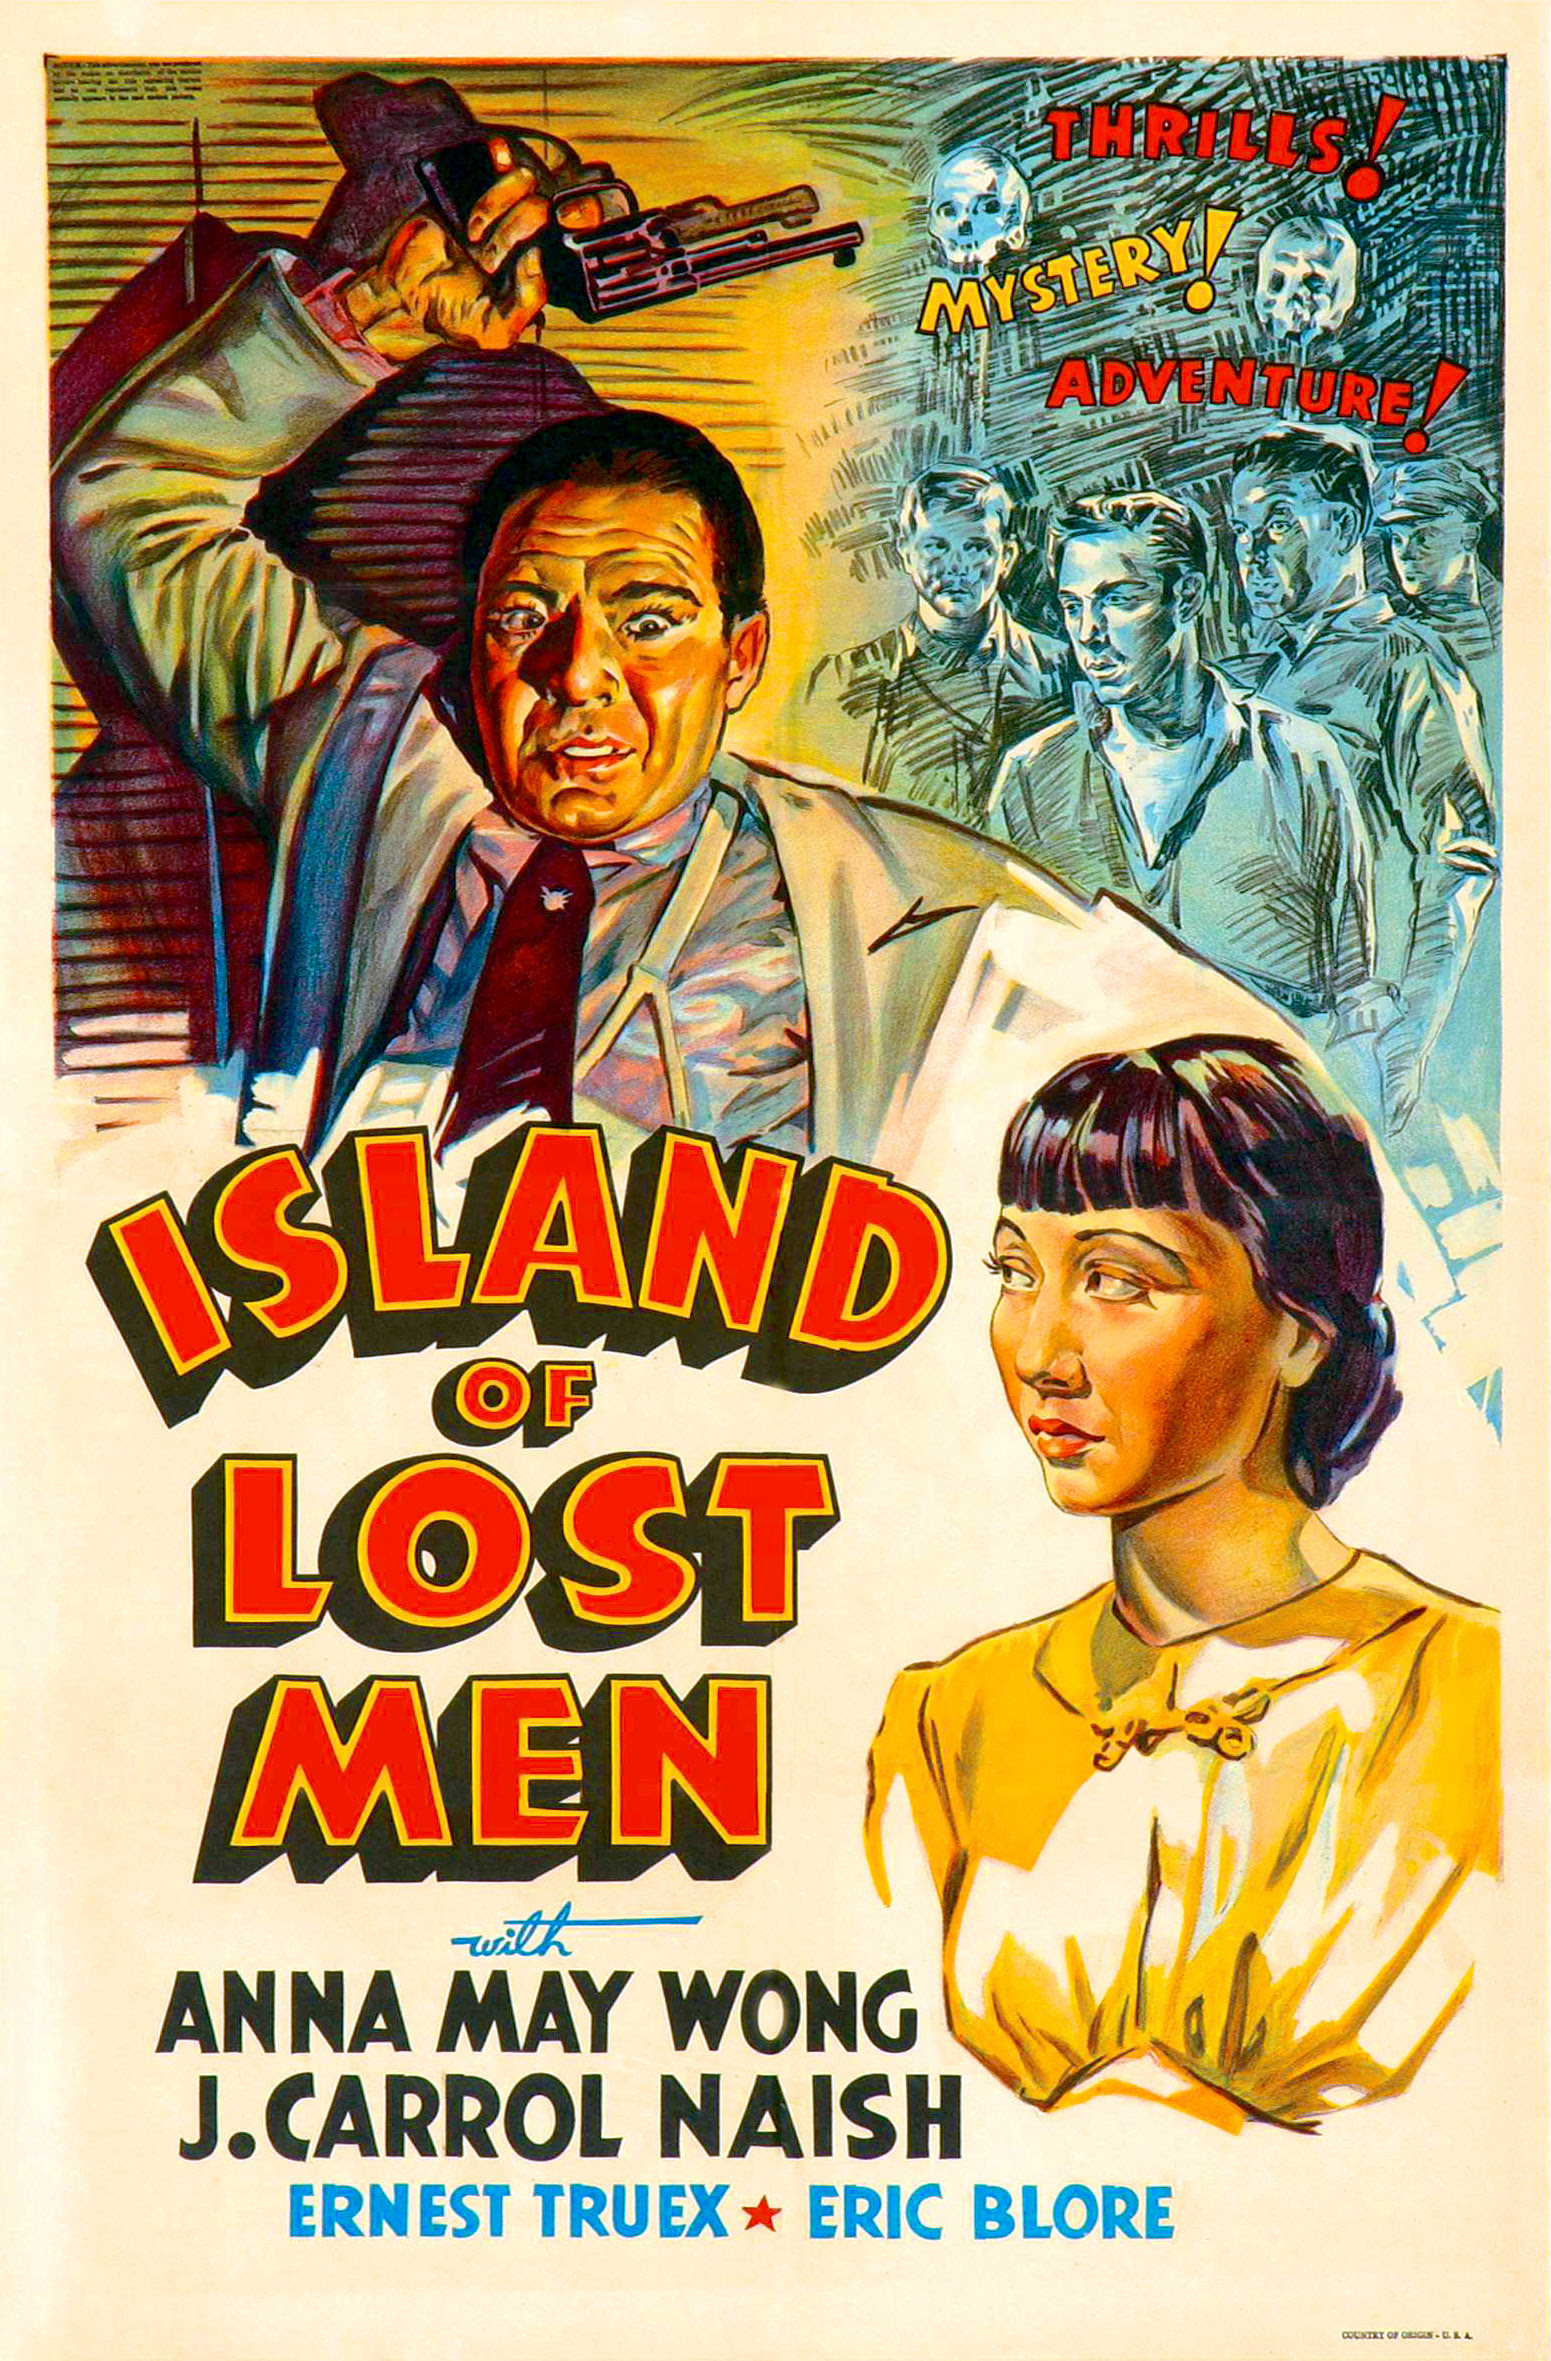 http://upload.wikimedia.org/wikipedia/commons/6/63/Poster_-_Island_of_Lost_Men_01.jpg